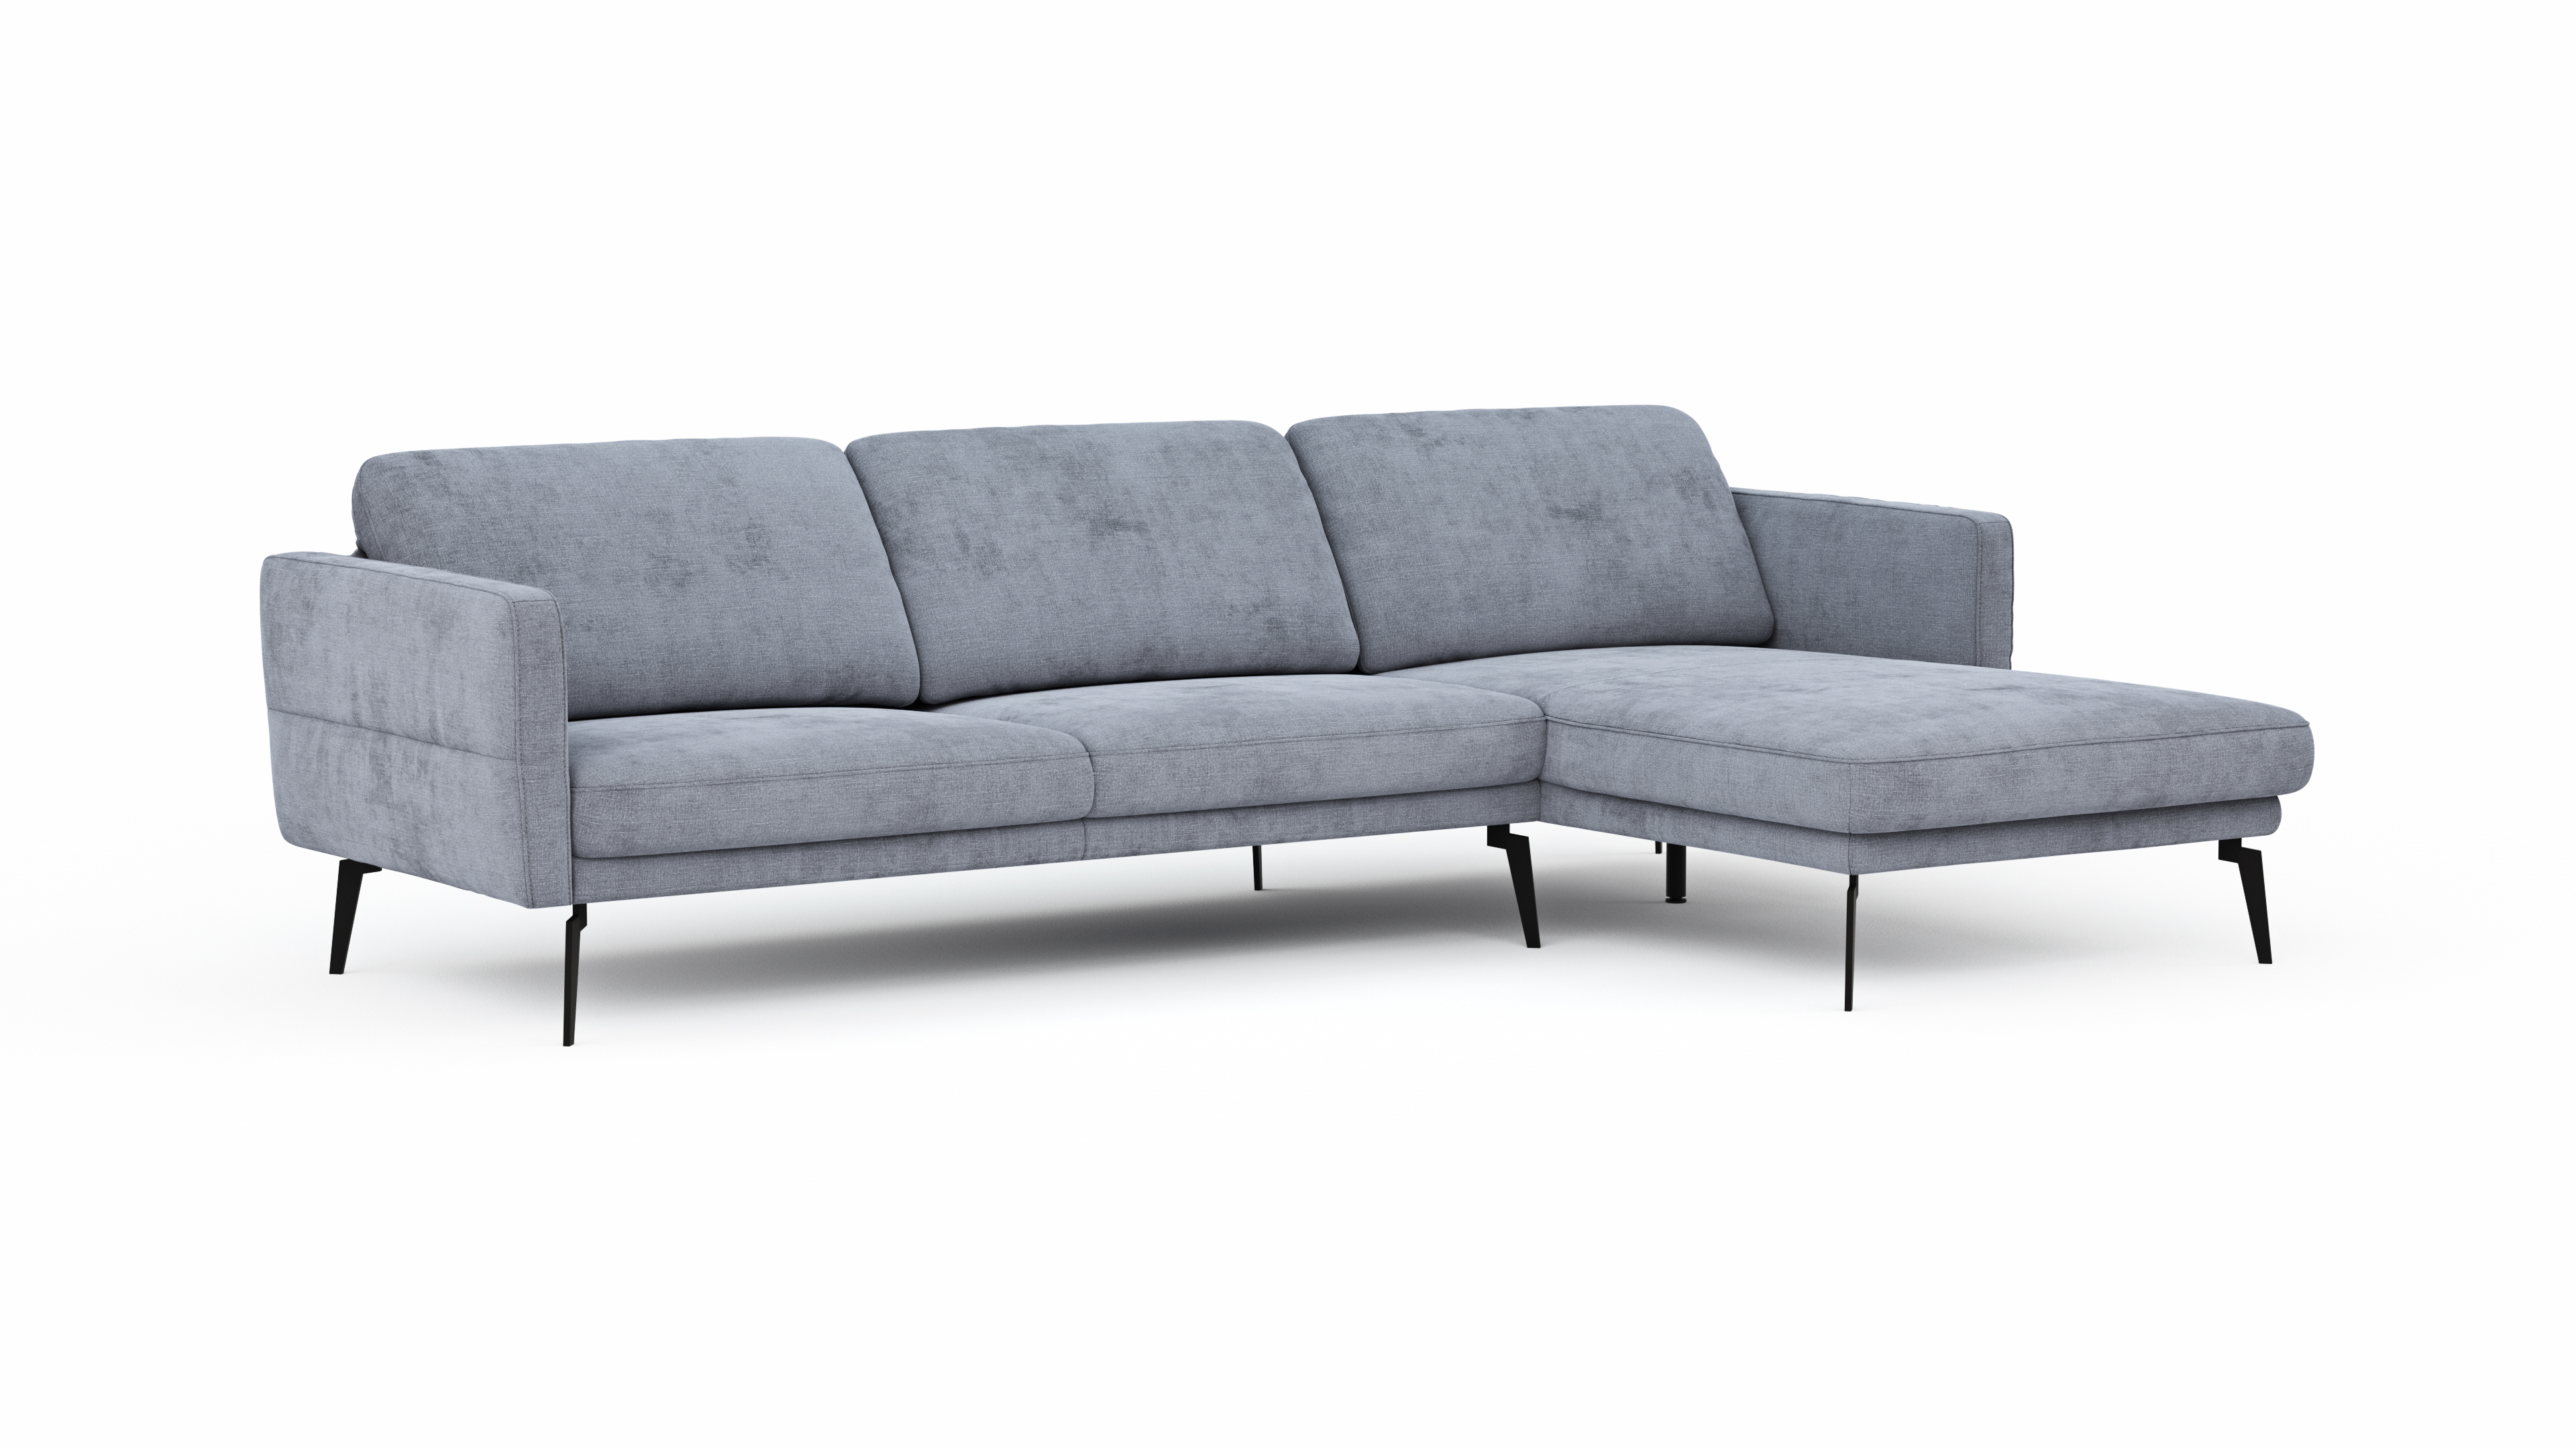 Global Select Ecksofa Estrela freisteller 2 104244 | Homepoet